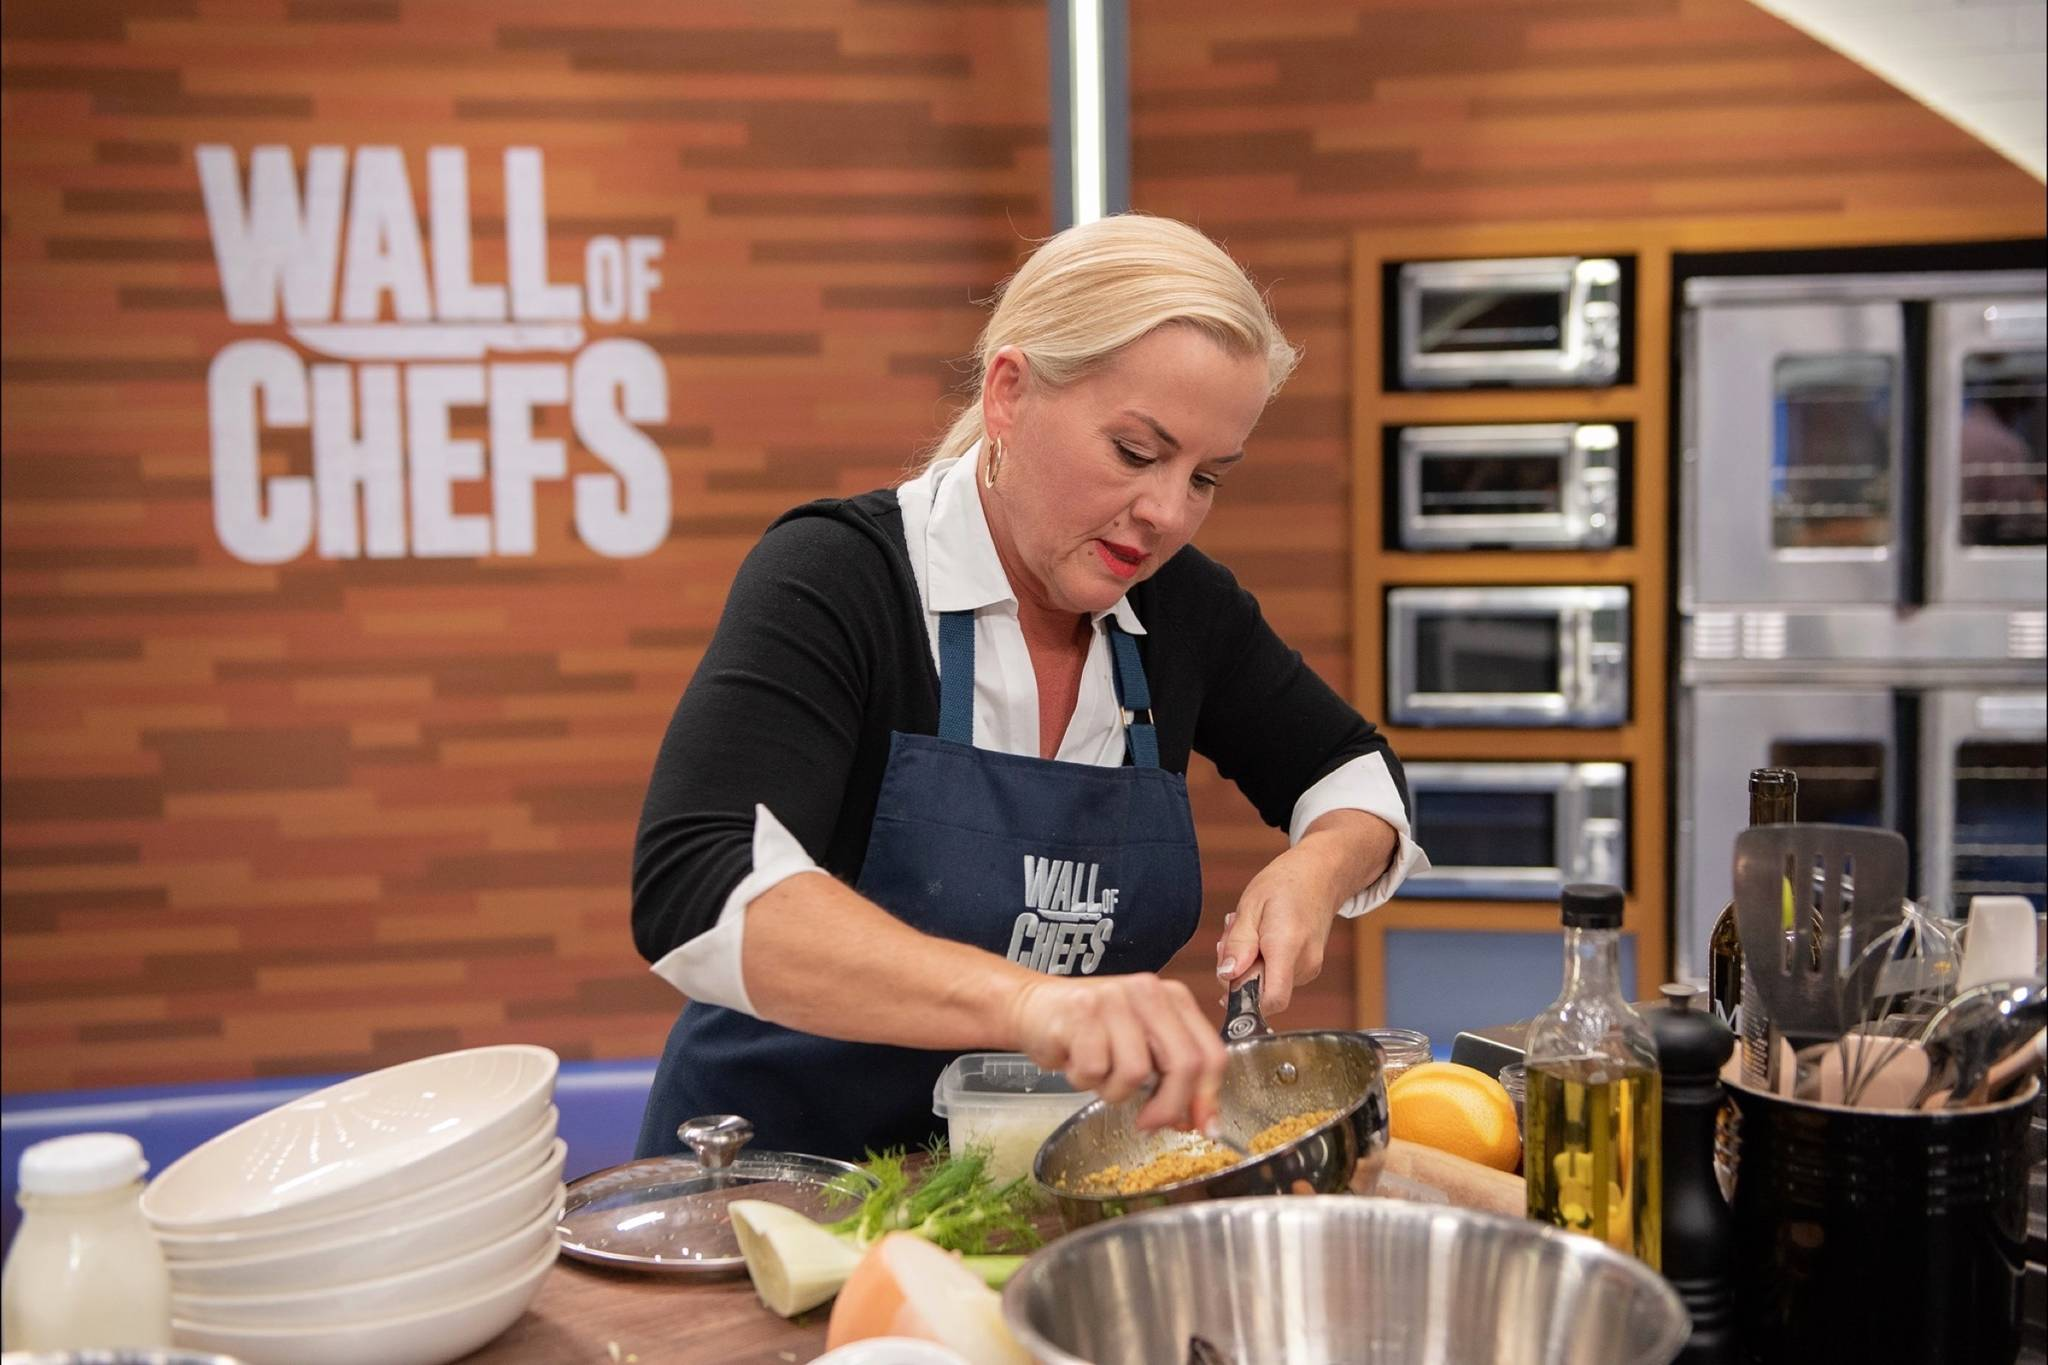 Former MasterChef contestant and home cook Tammy Wood is seen here competing on Wall of Chefs for Food Network Canada. The episode featuring the Agassiz chef will air on Tuesday, September 15, at 7 p.m. PST. (Contributed Photo/Sossy Outdoors)